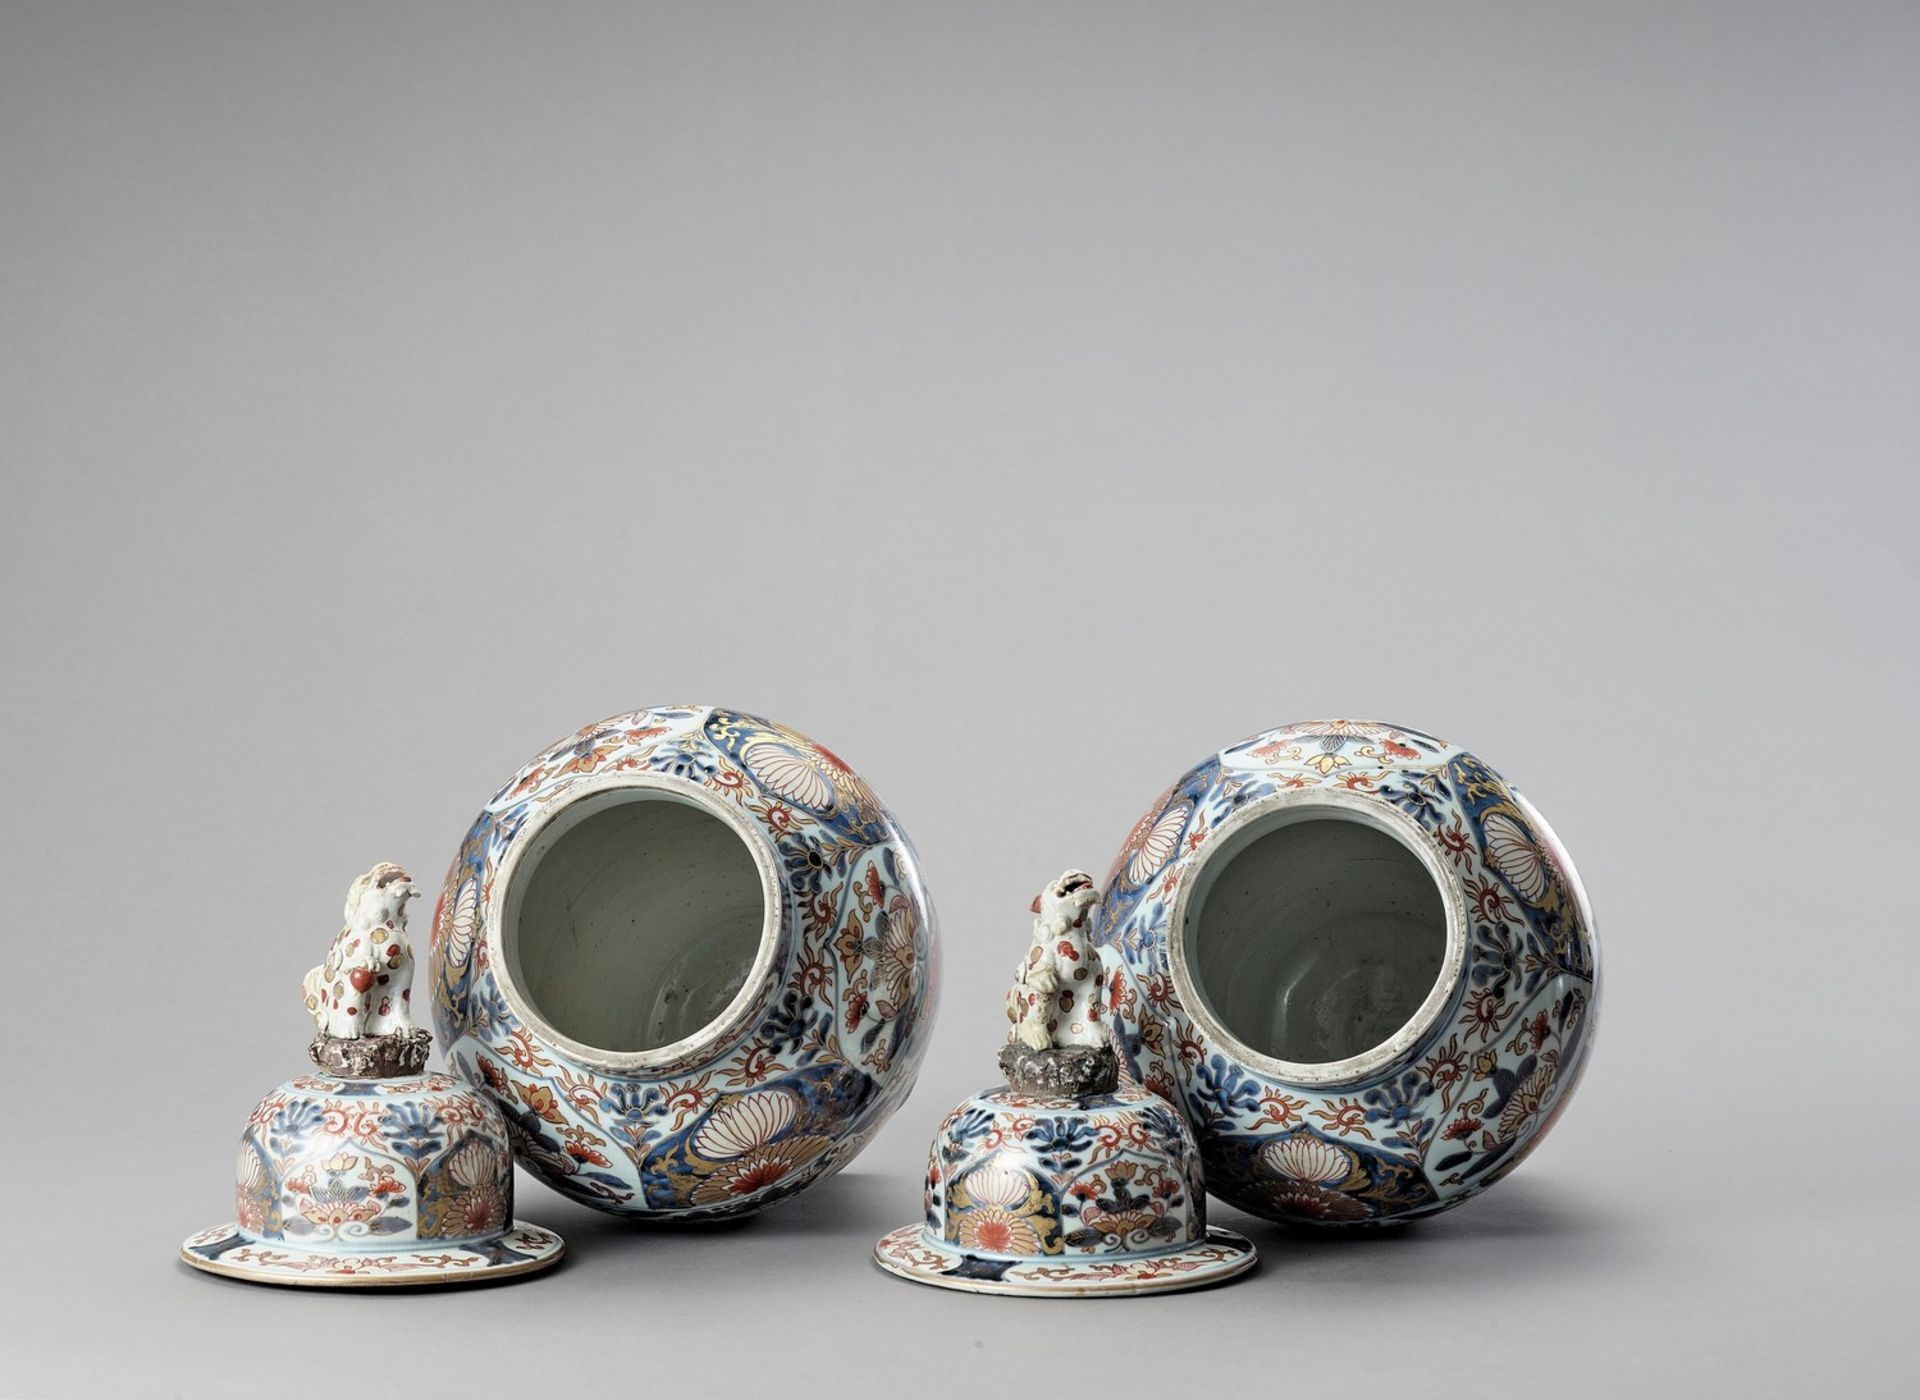 A LARGE PAIR OF IMARI PORCELAIN VASES AND COVERS - Image 5 of 6